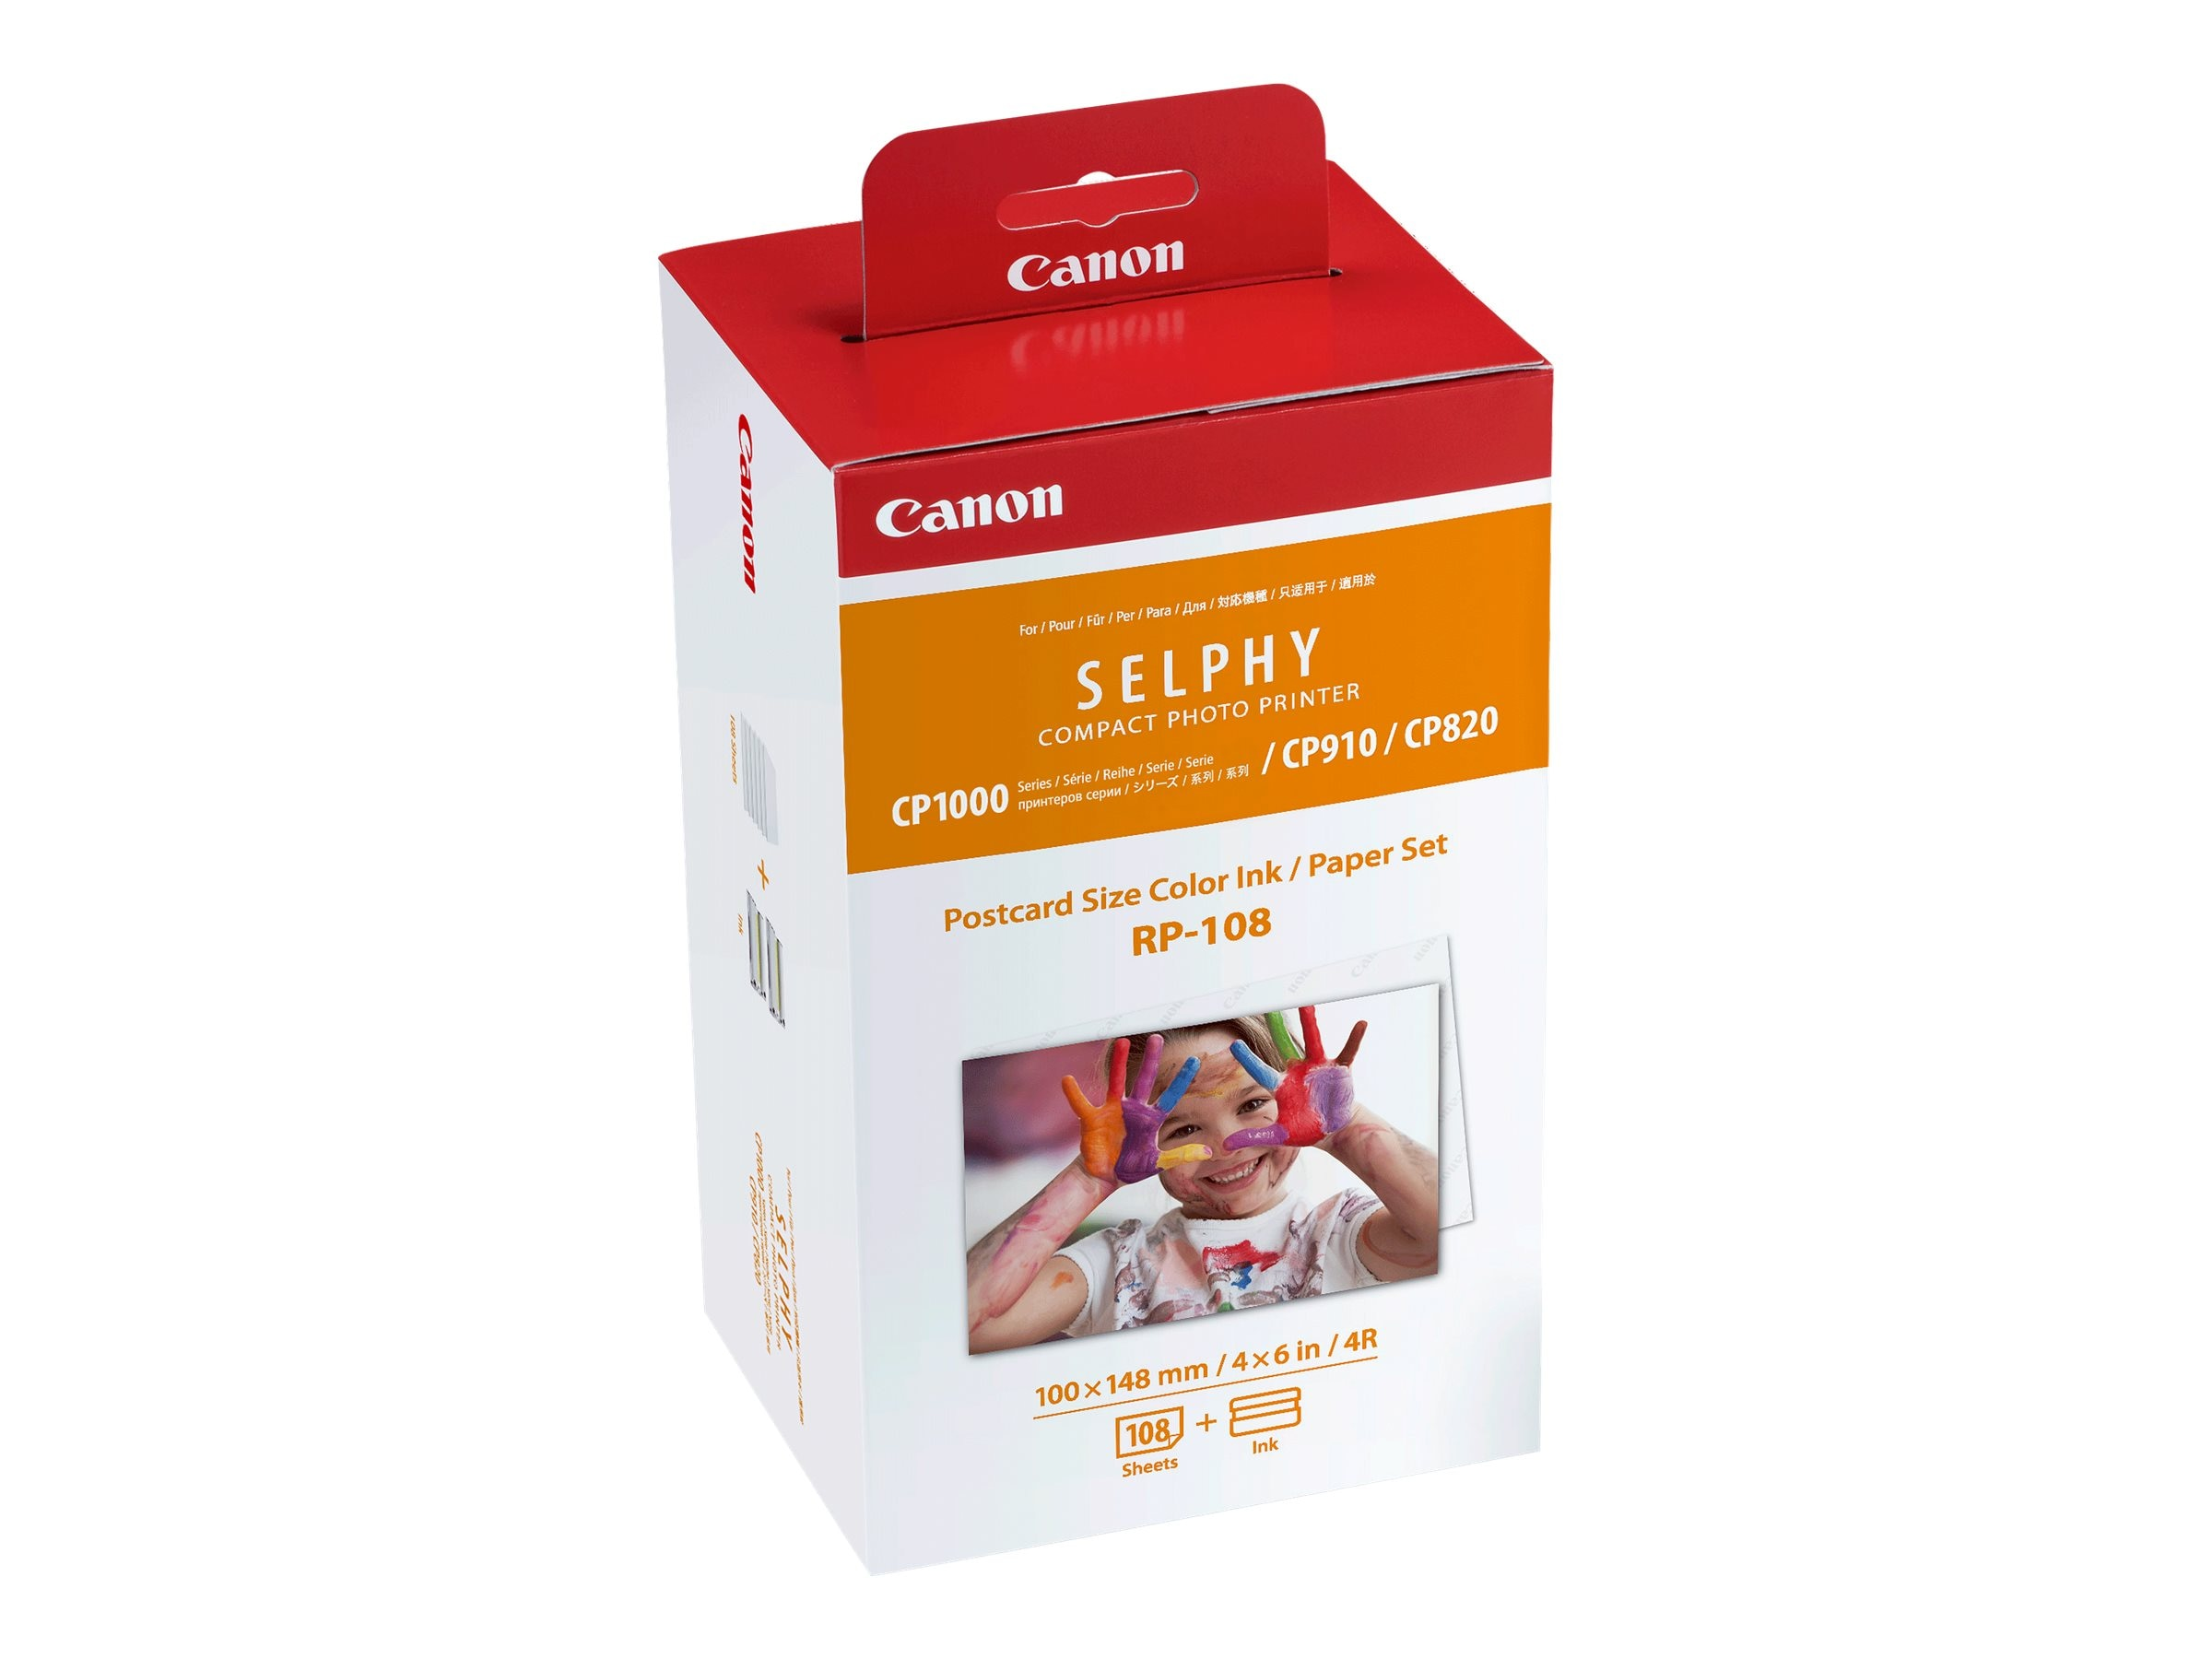 Canon RP-108 Postcard Paper & Ink (108 Sheets)